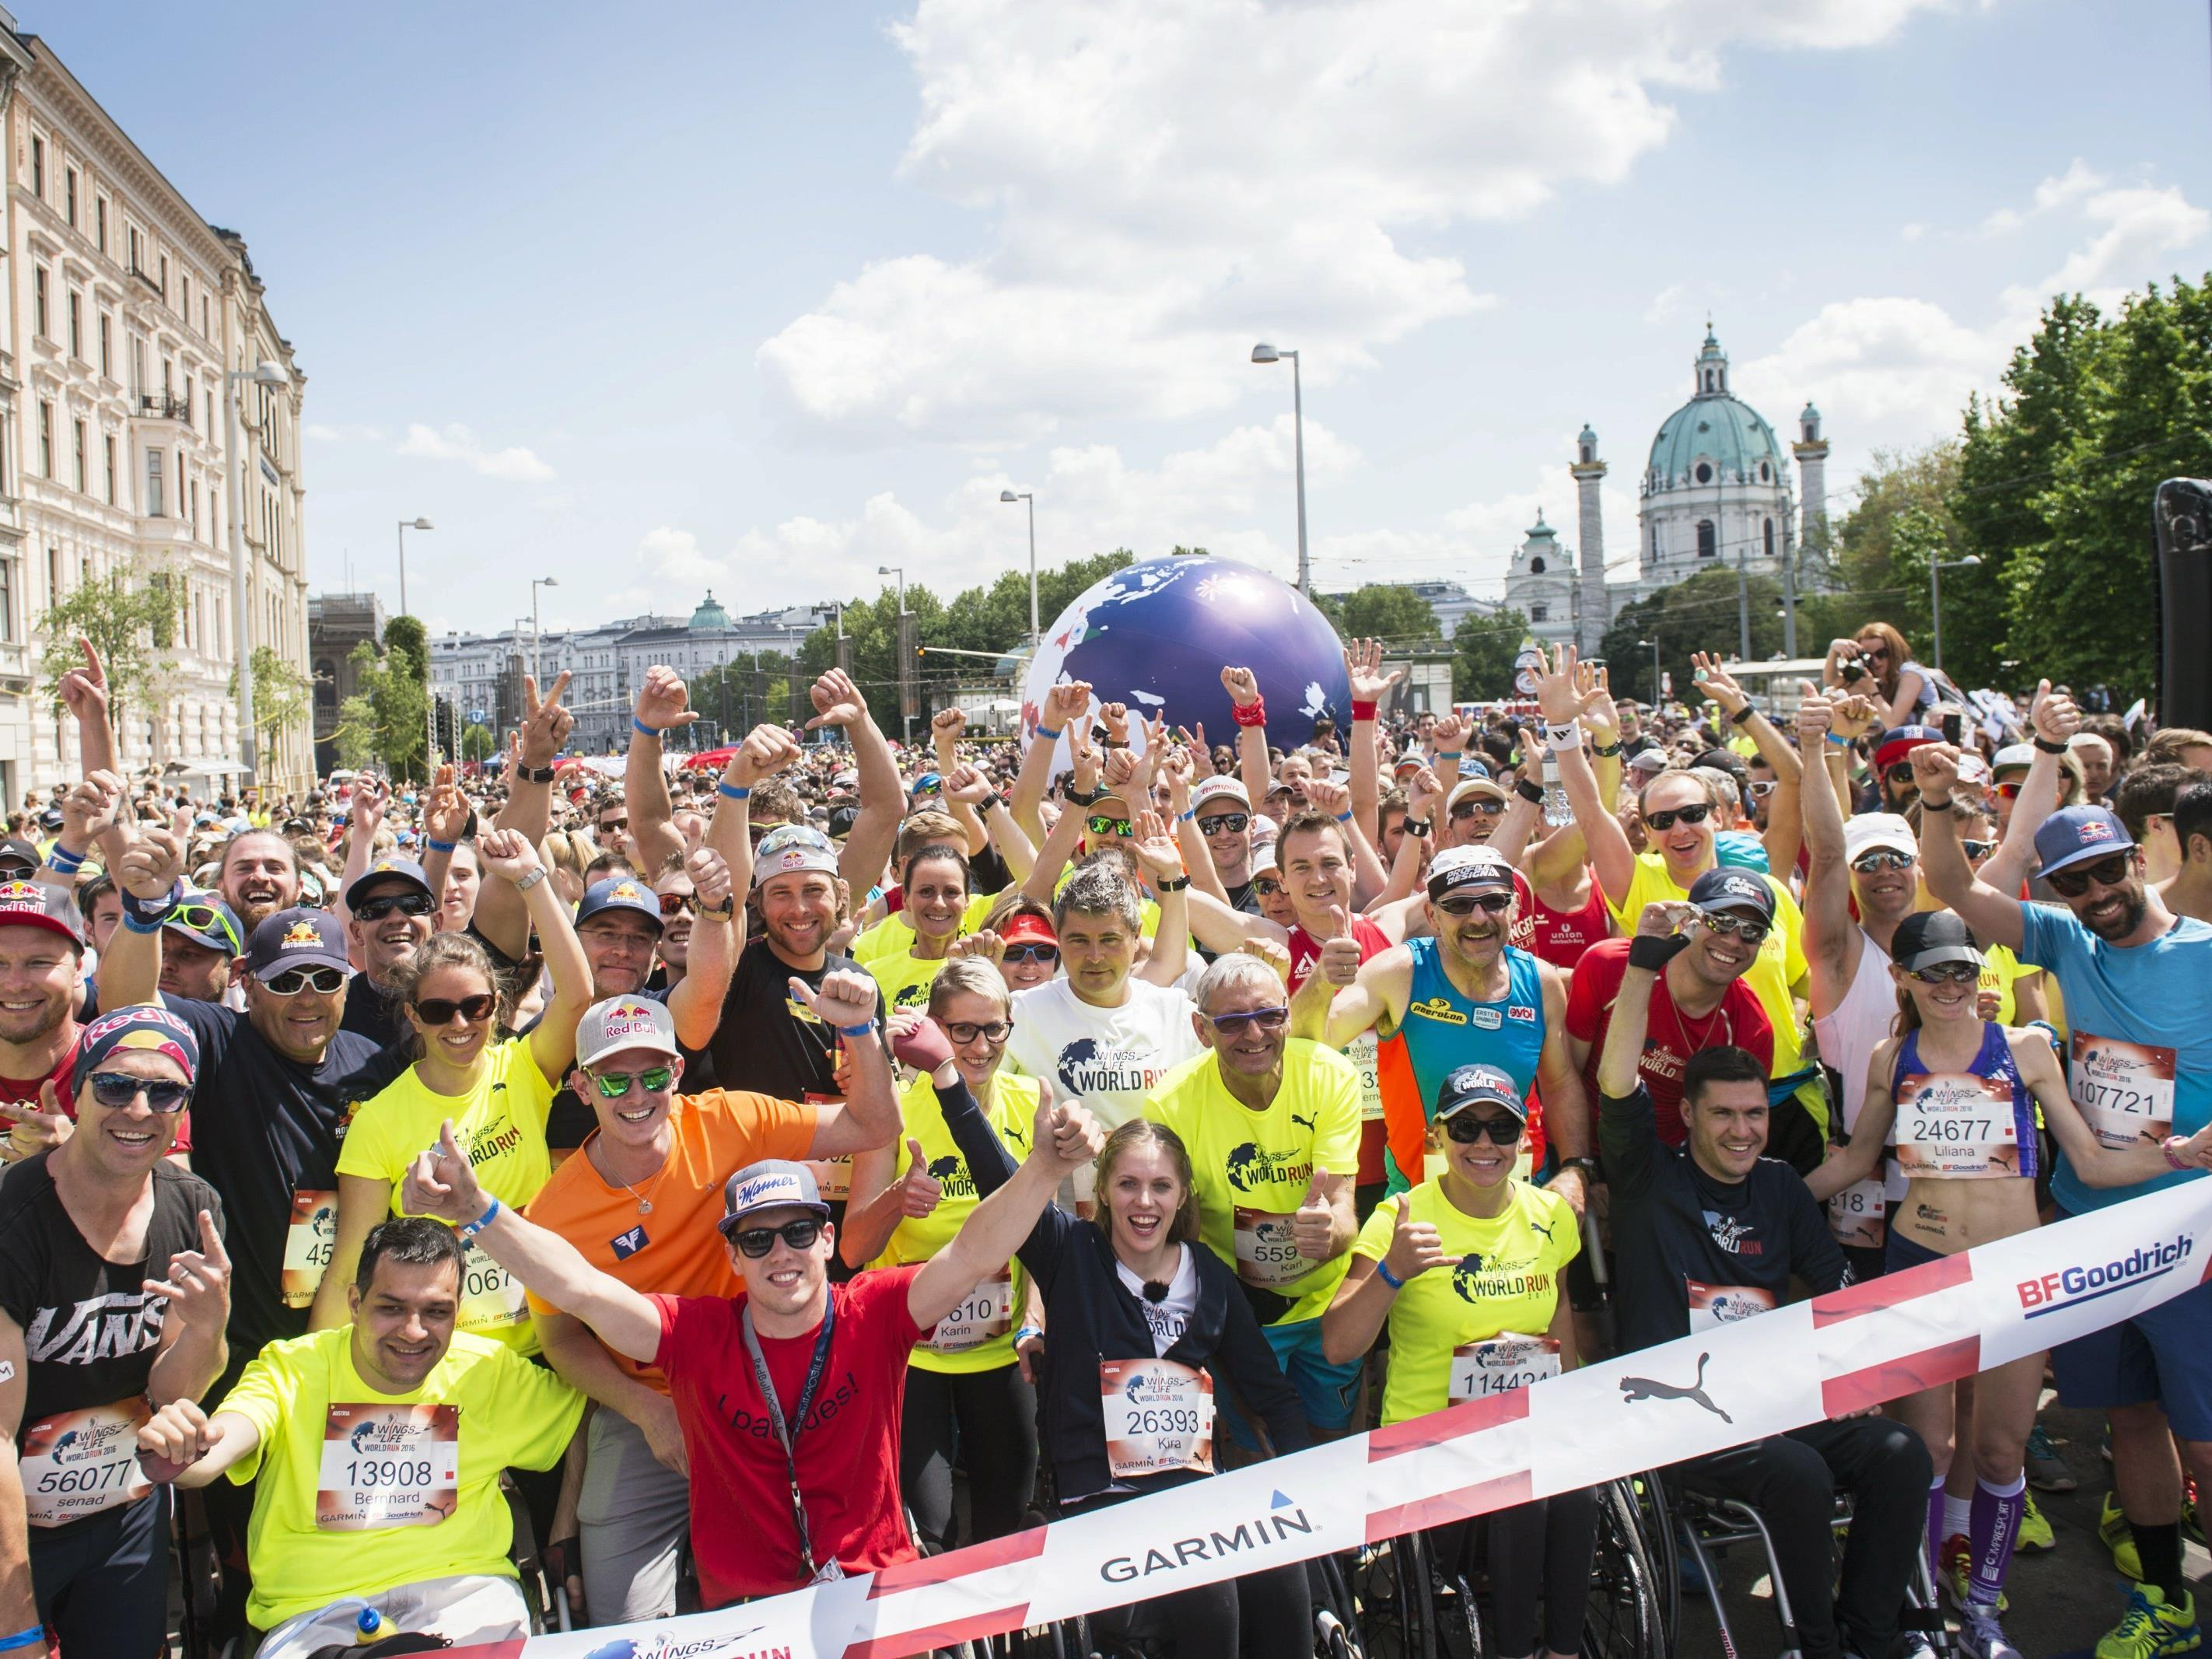 Der vierte Wings for Life World Run findet am 7. Mai 2017 statt.